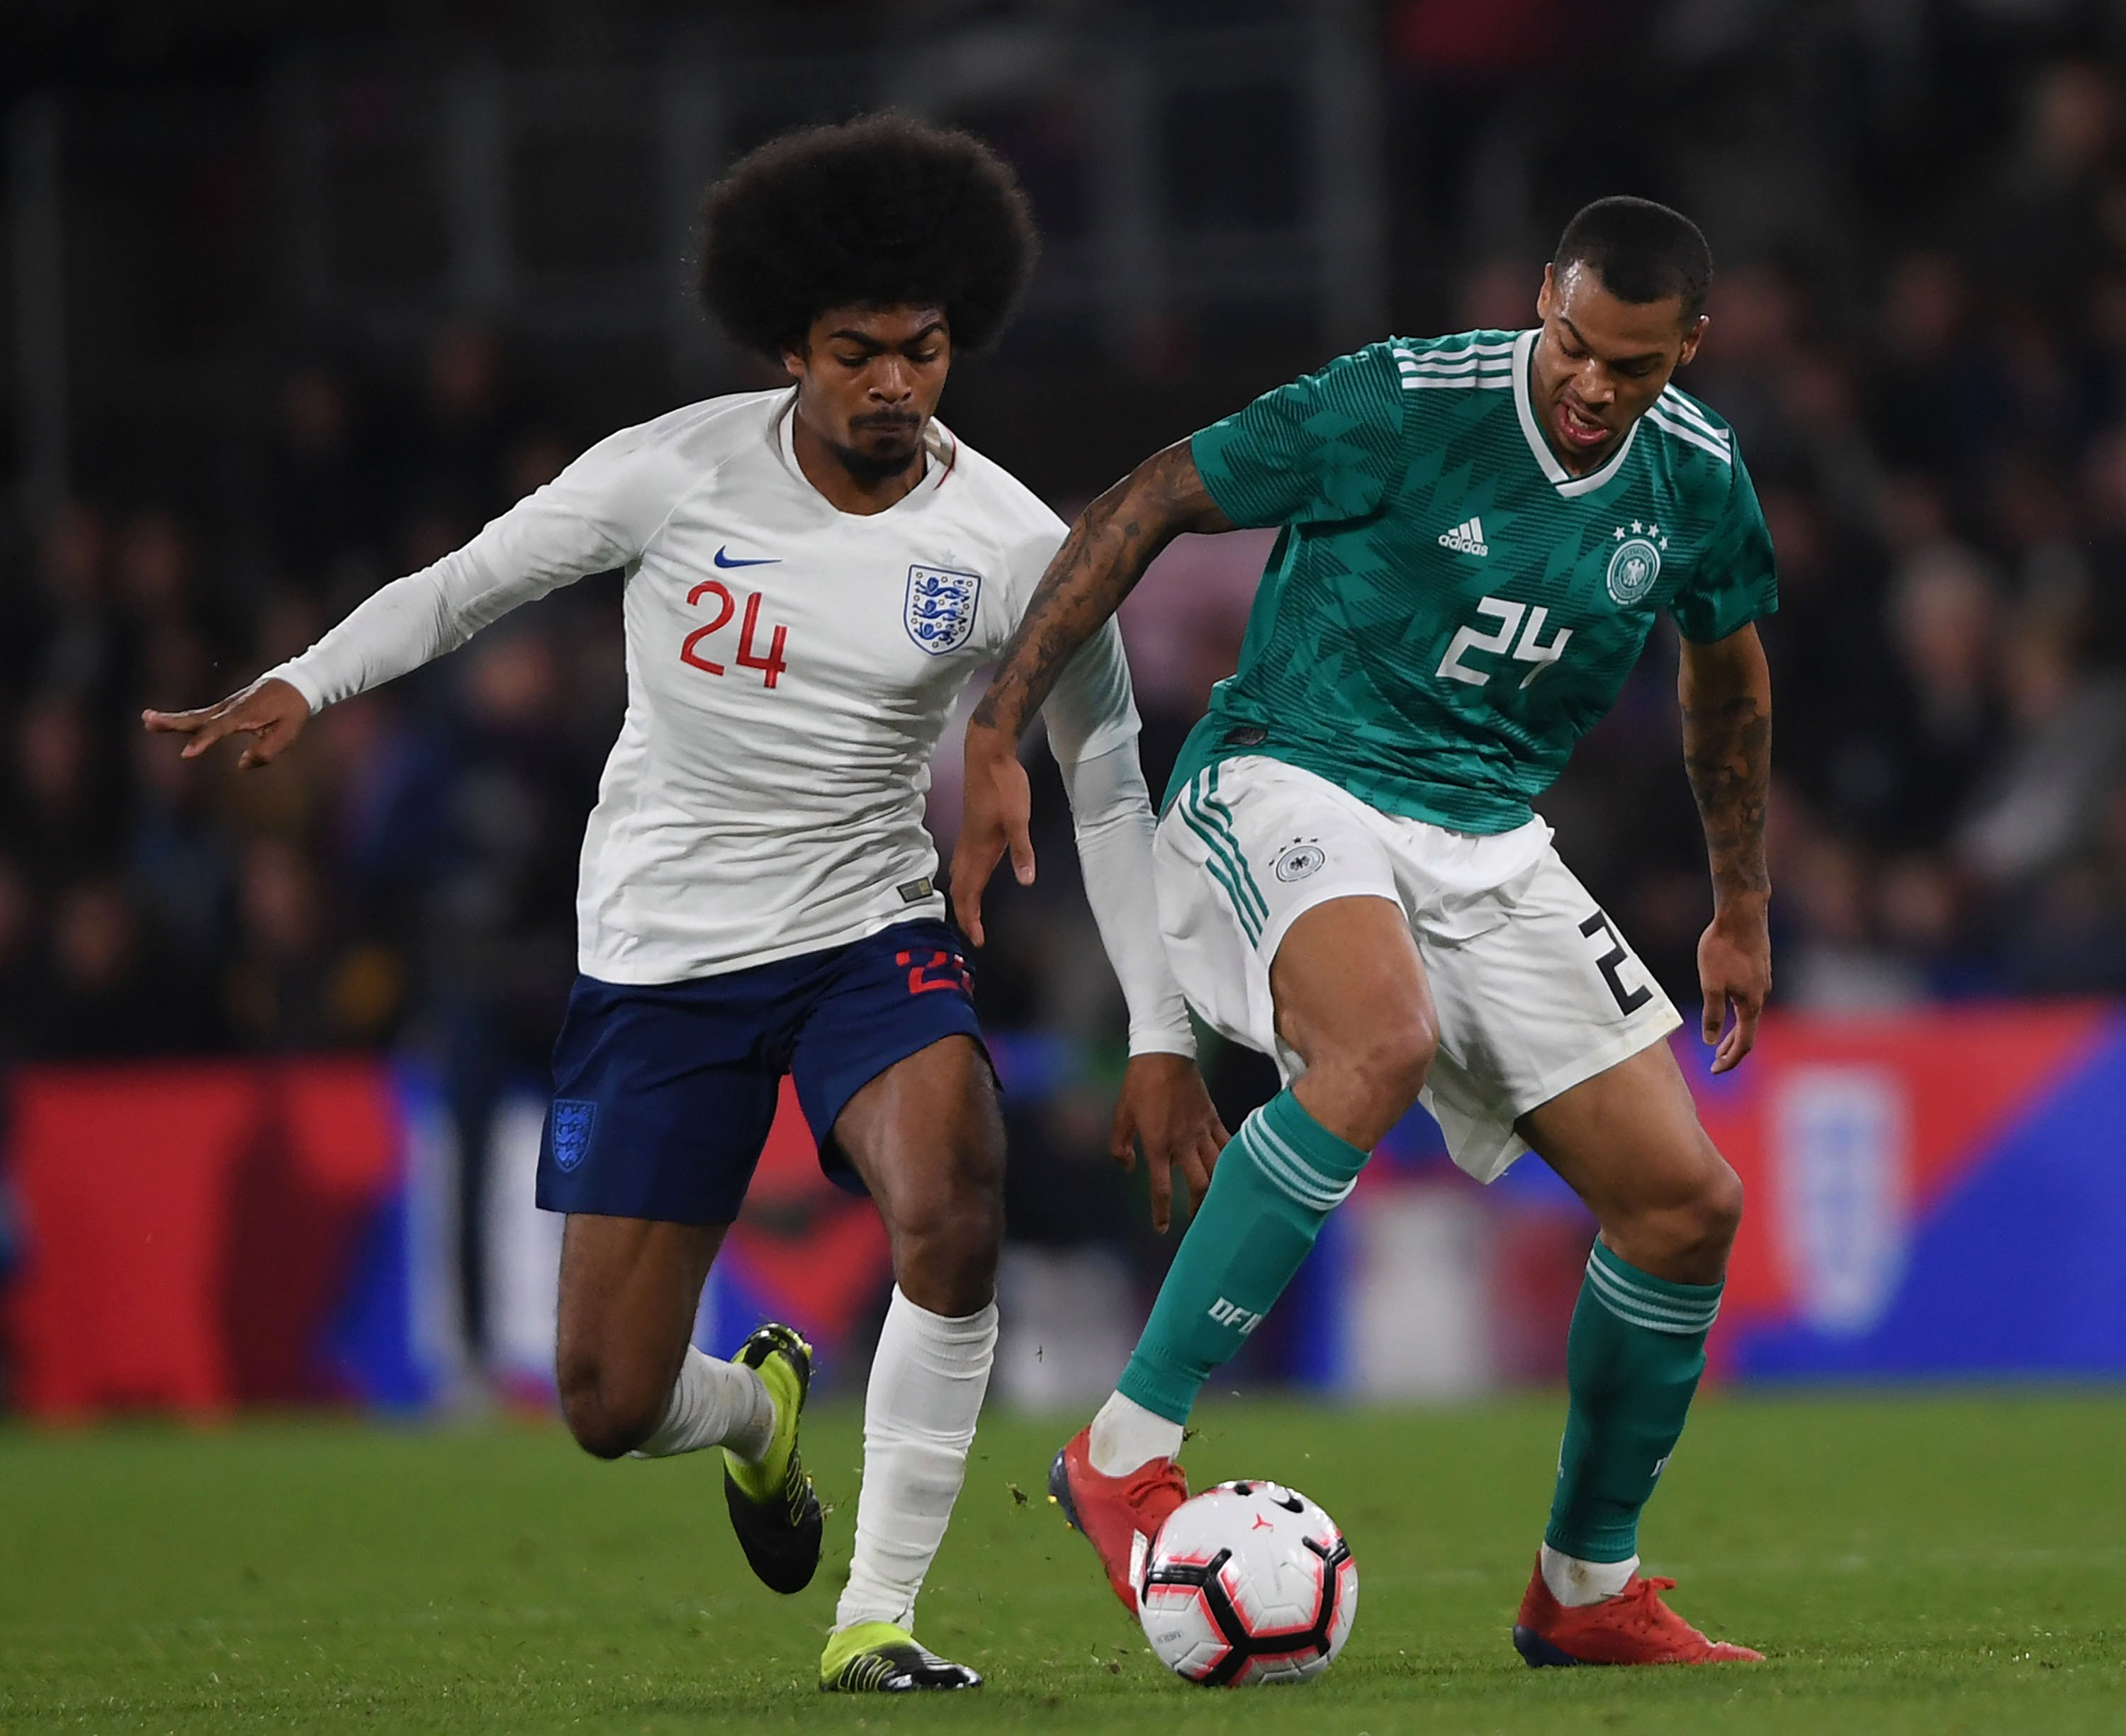 Man City starlet Lukas Nmecha pledges future to Germany despite England U21 caps after playing against Three Lions this week